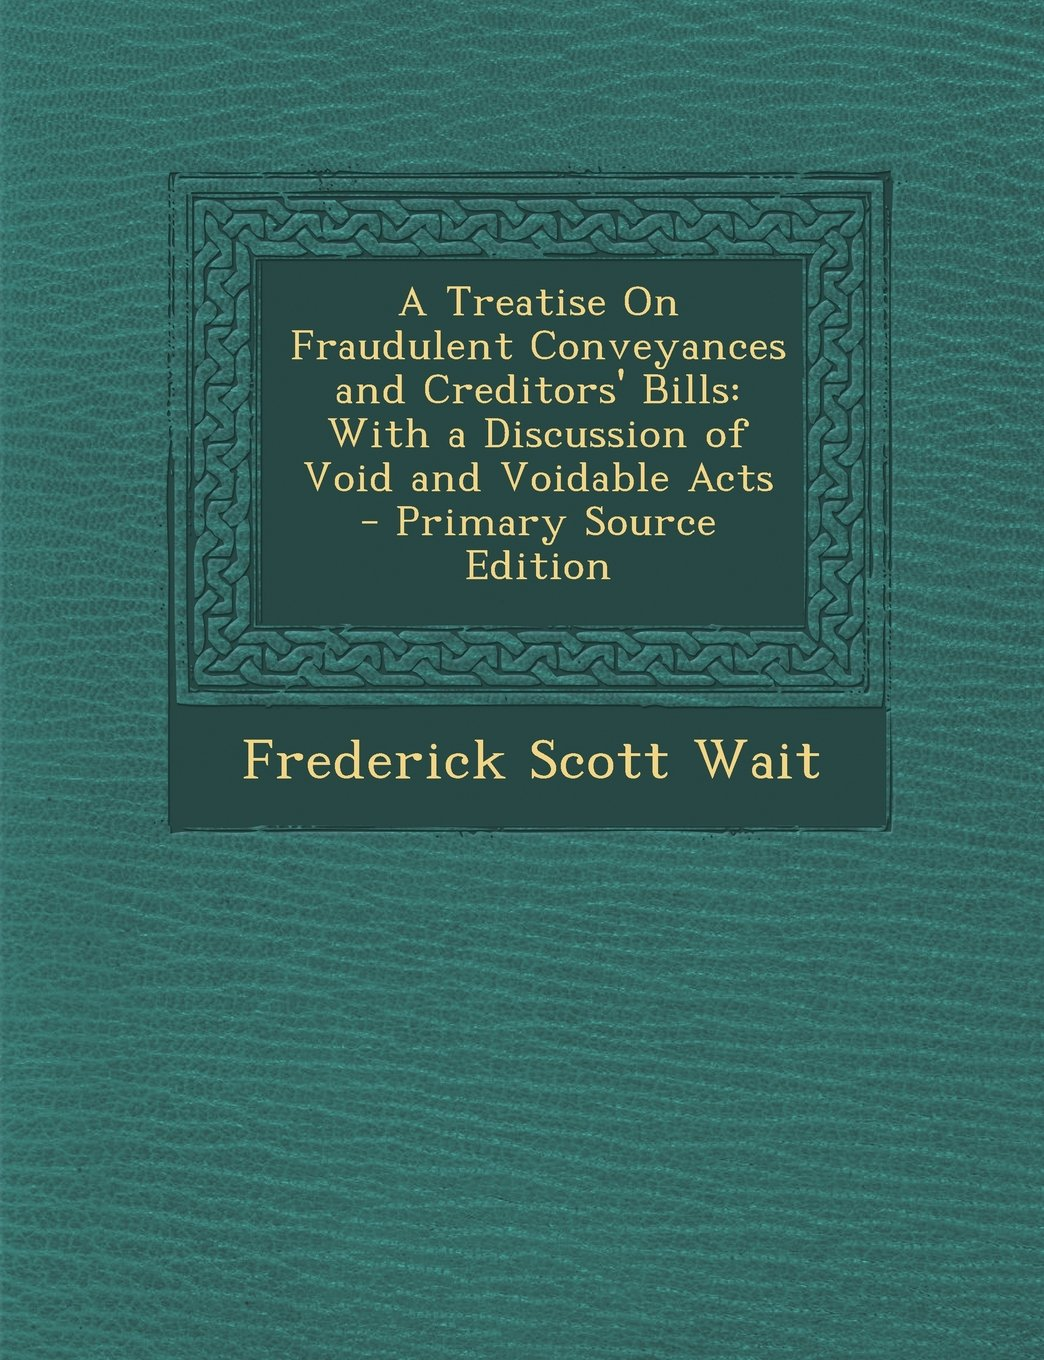 Treatise on Fraudulent Conveyances and Creditors' Bills: With a Discussion of Void and Voidable Acts pdf epub